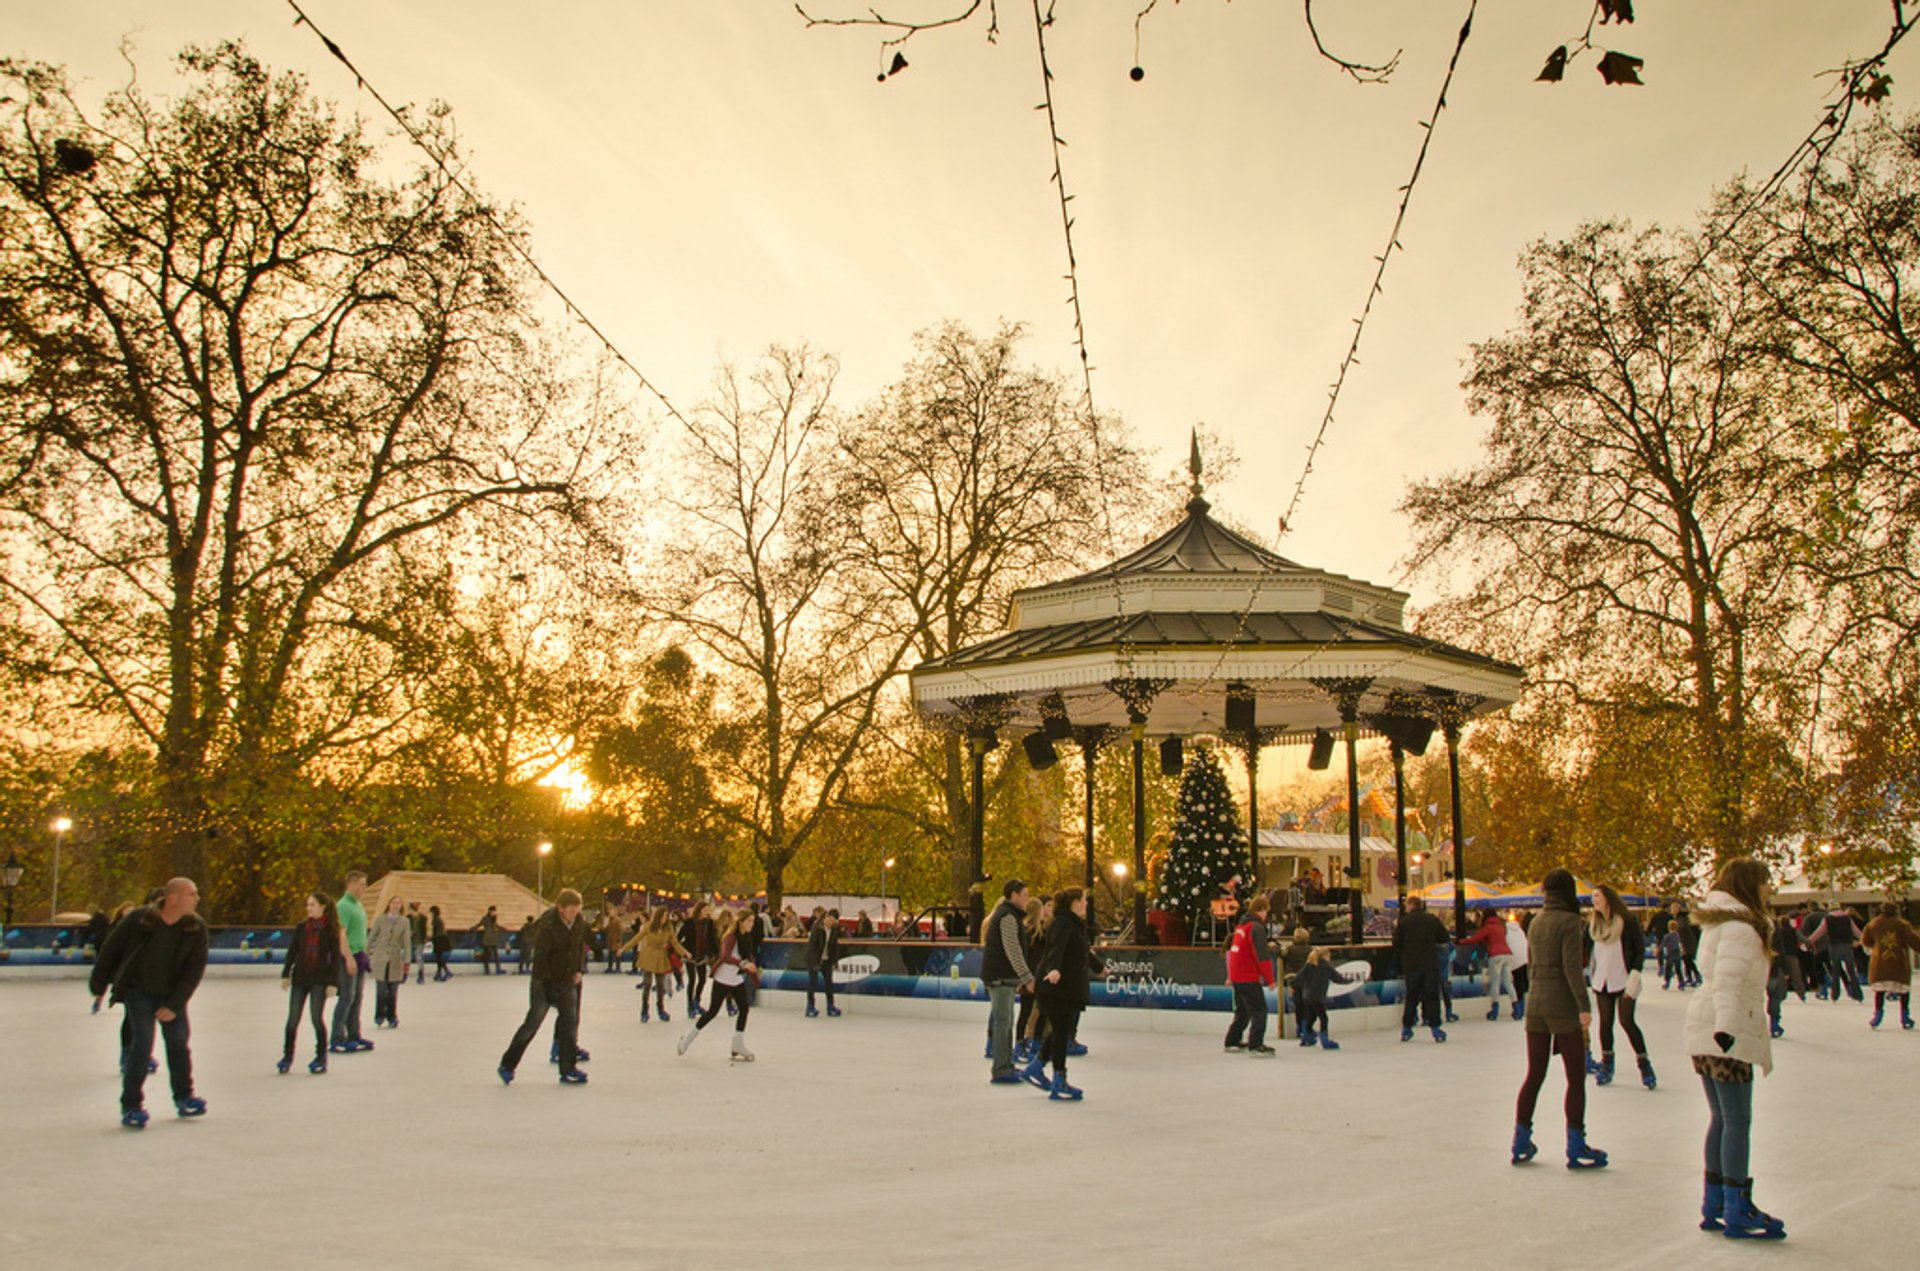 Winter Wonderland's Ice Rink in Hyde Park 2020